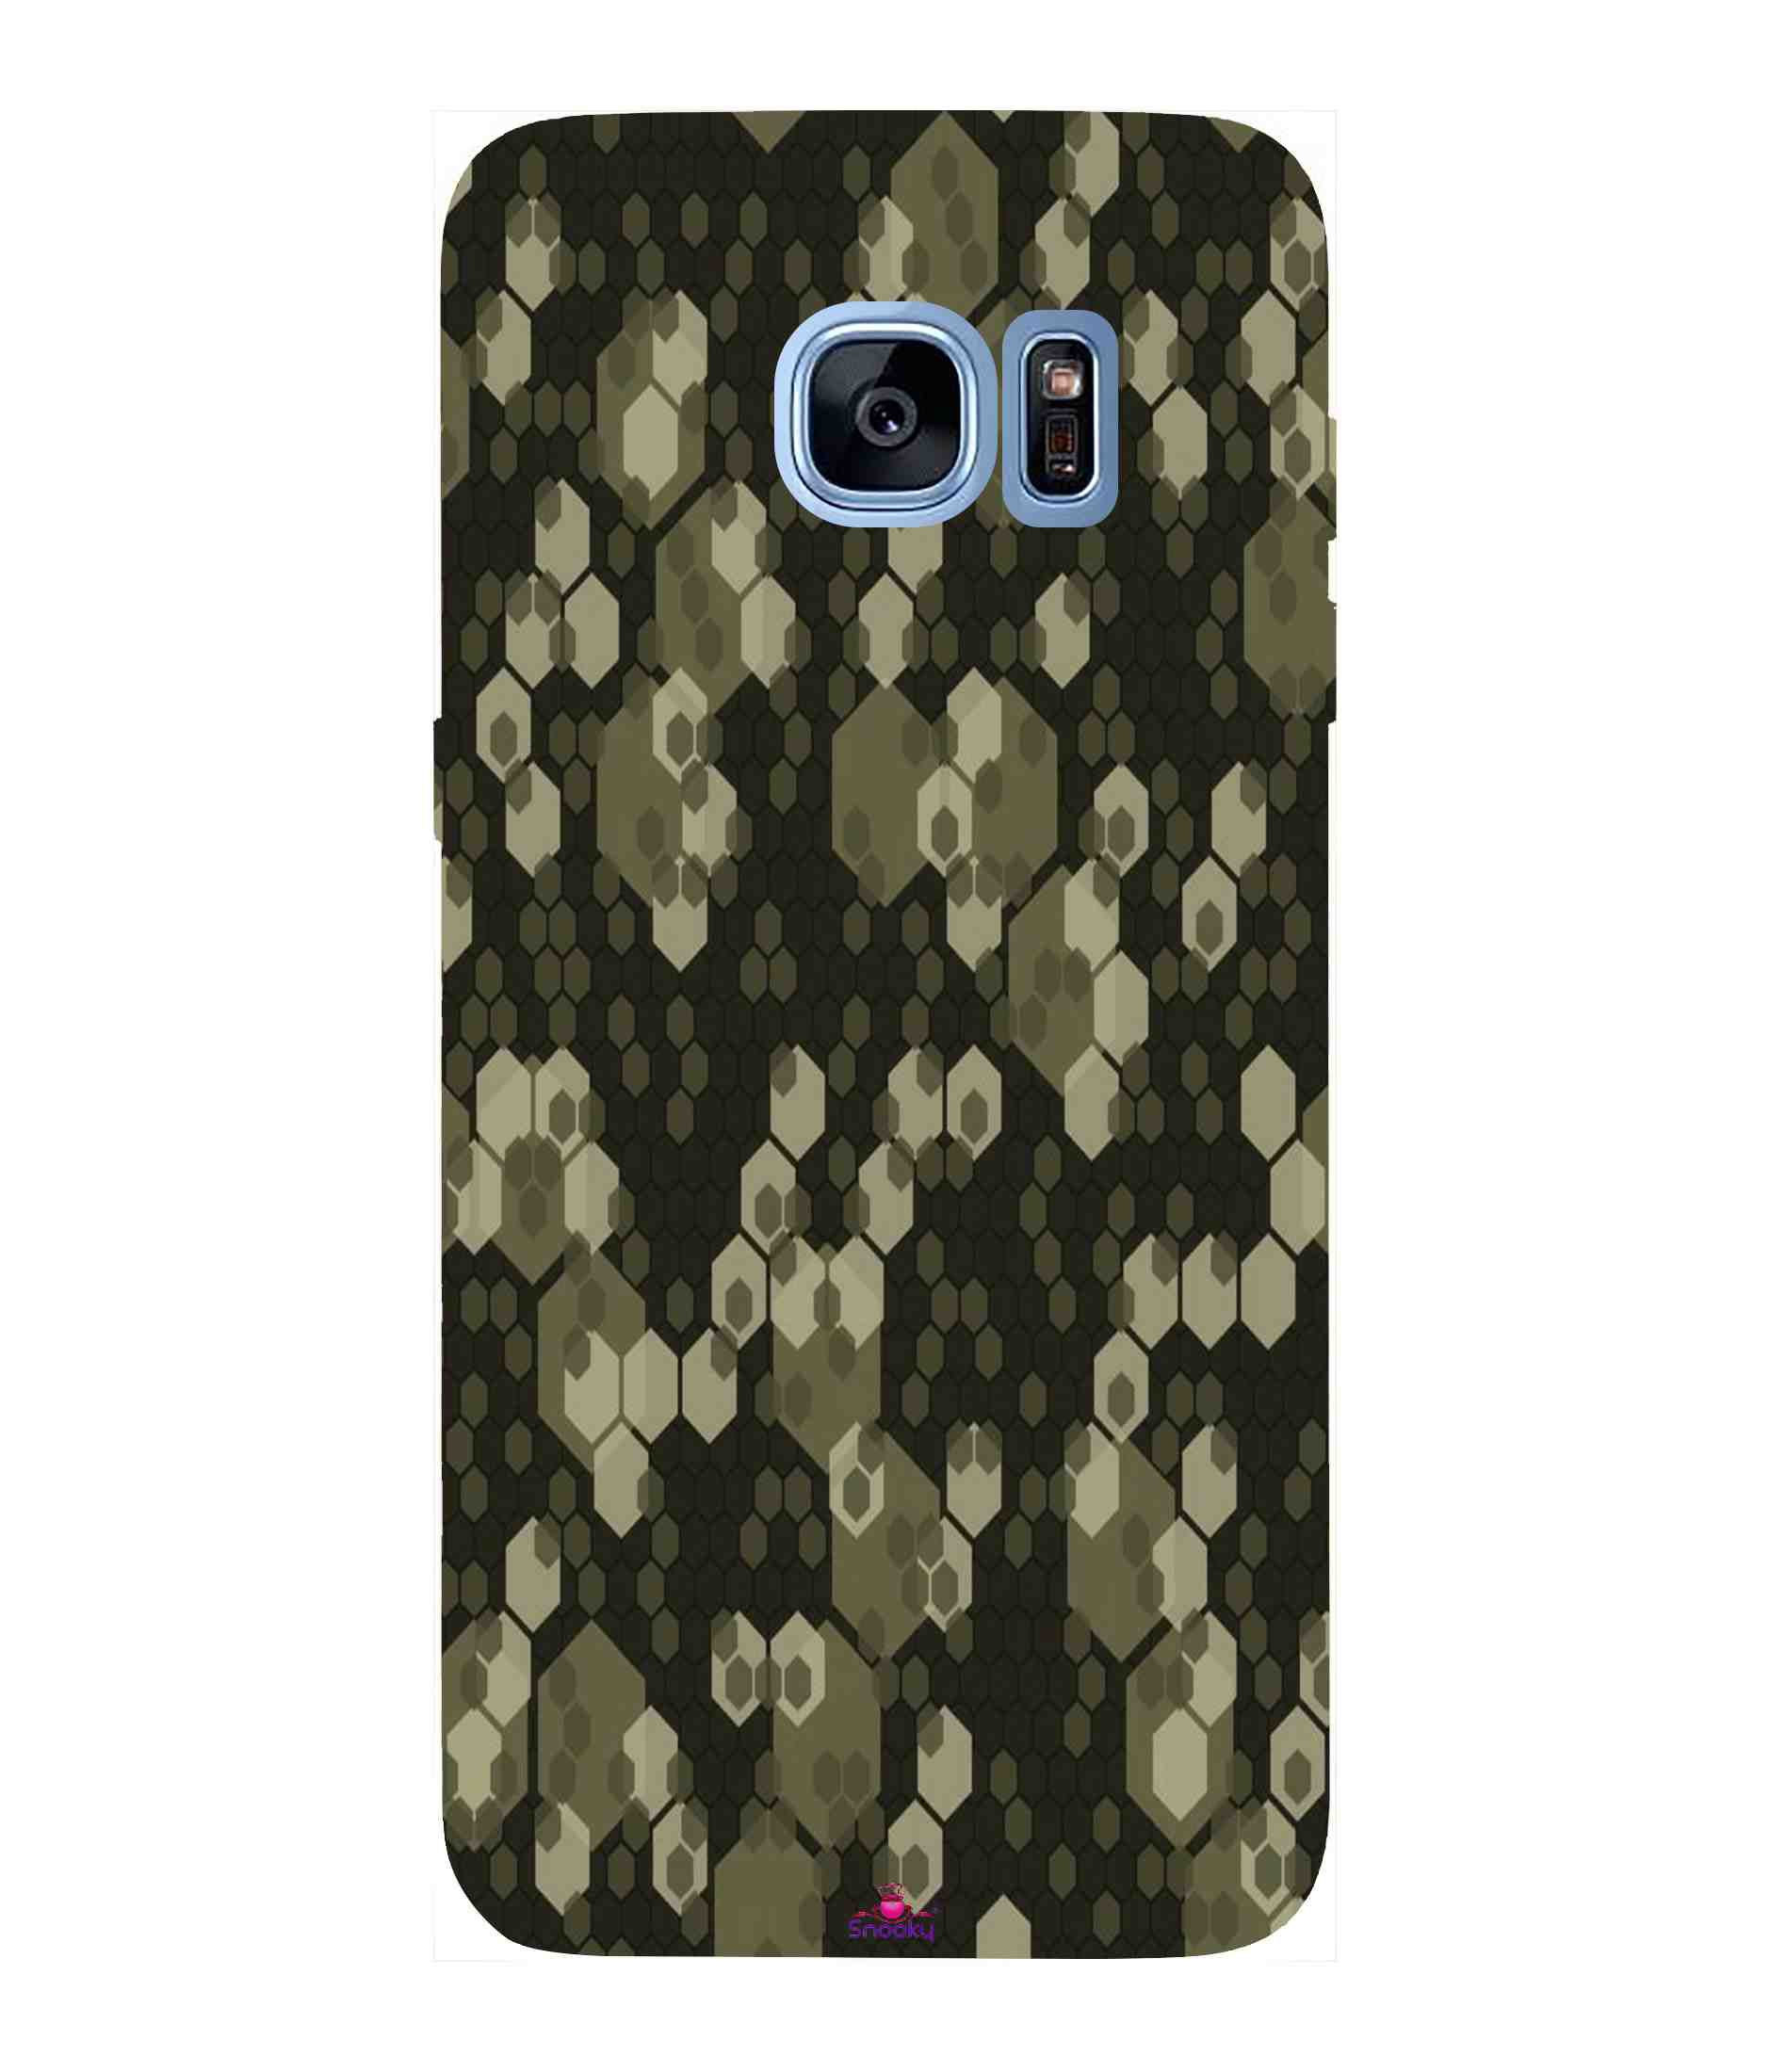 Samsung Galaxy S7 Edge Printed Cover By Snooky